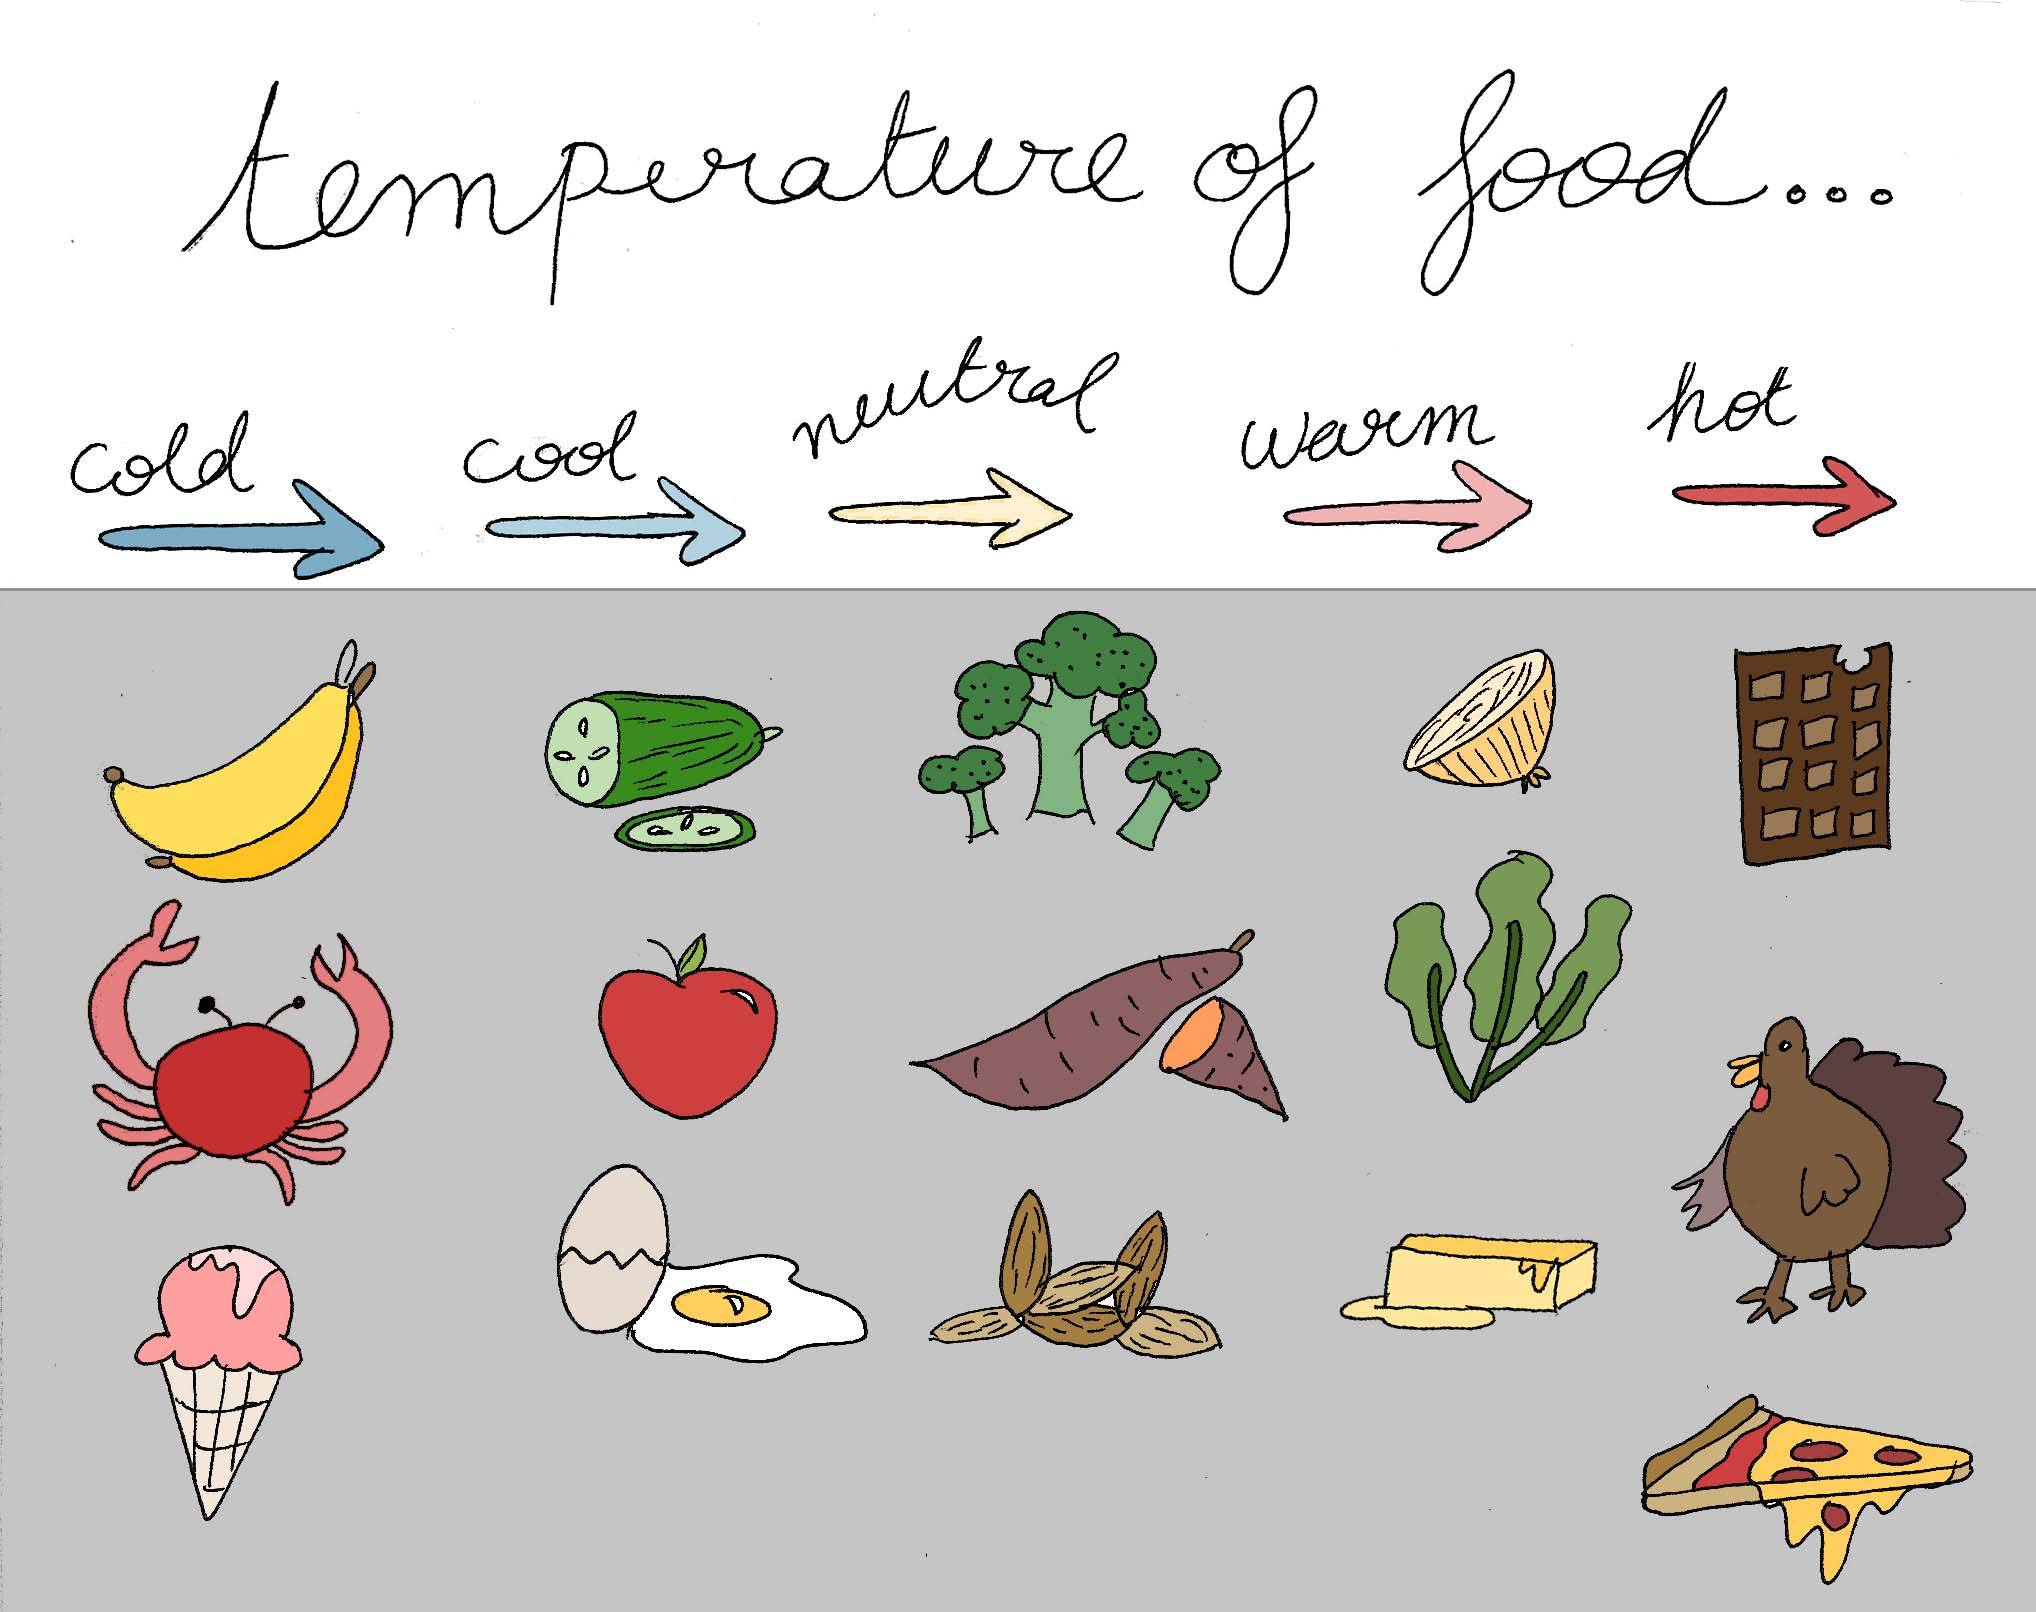 Spectrum of food temperatures